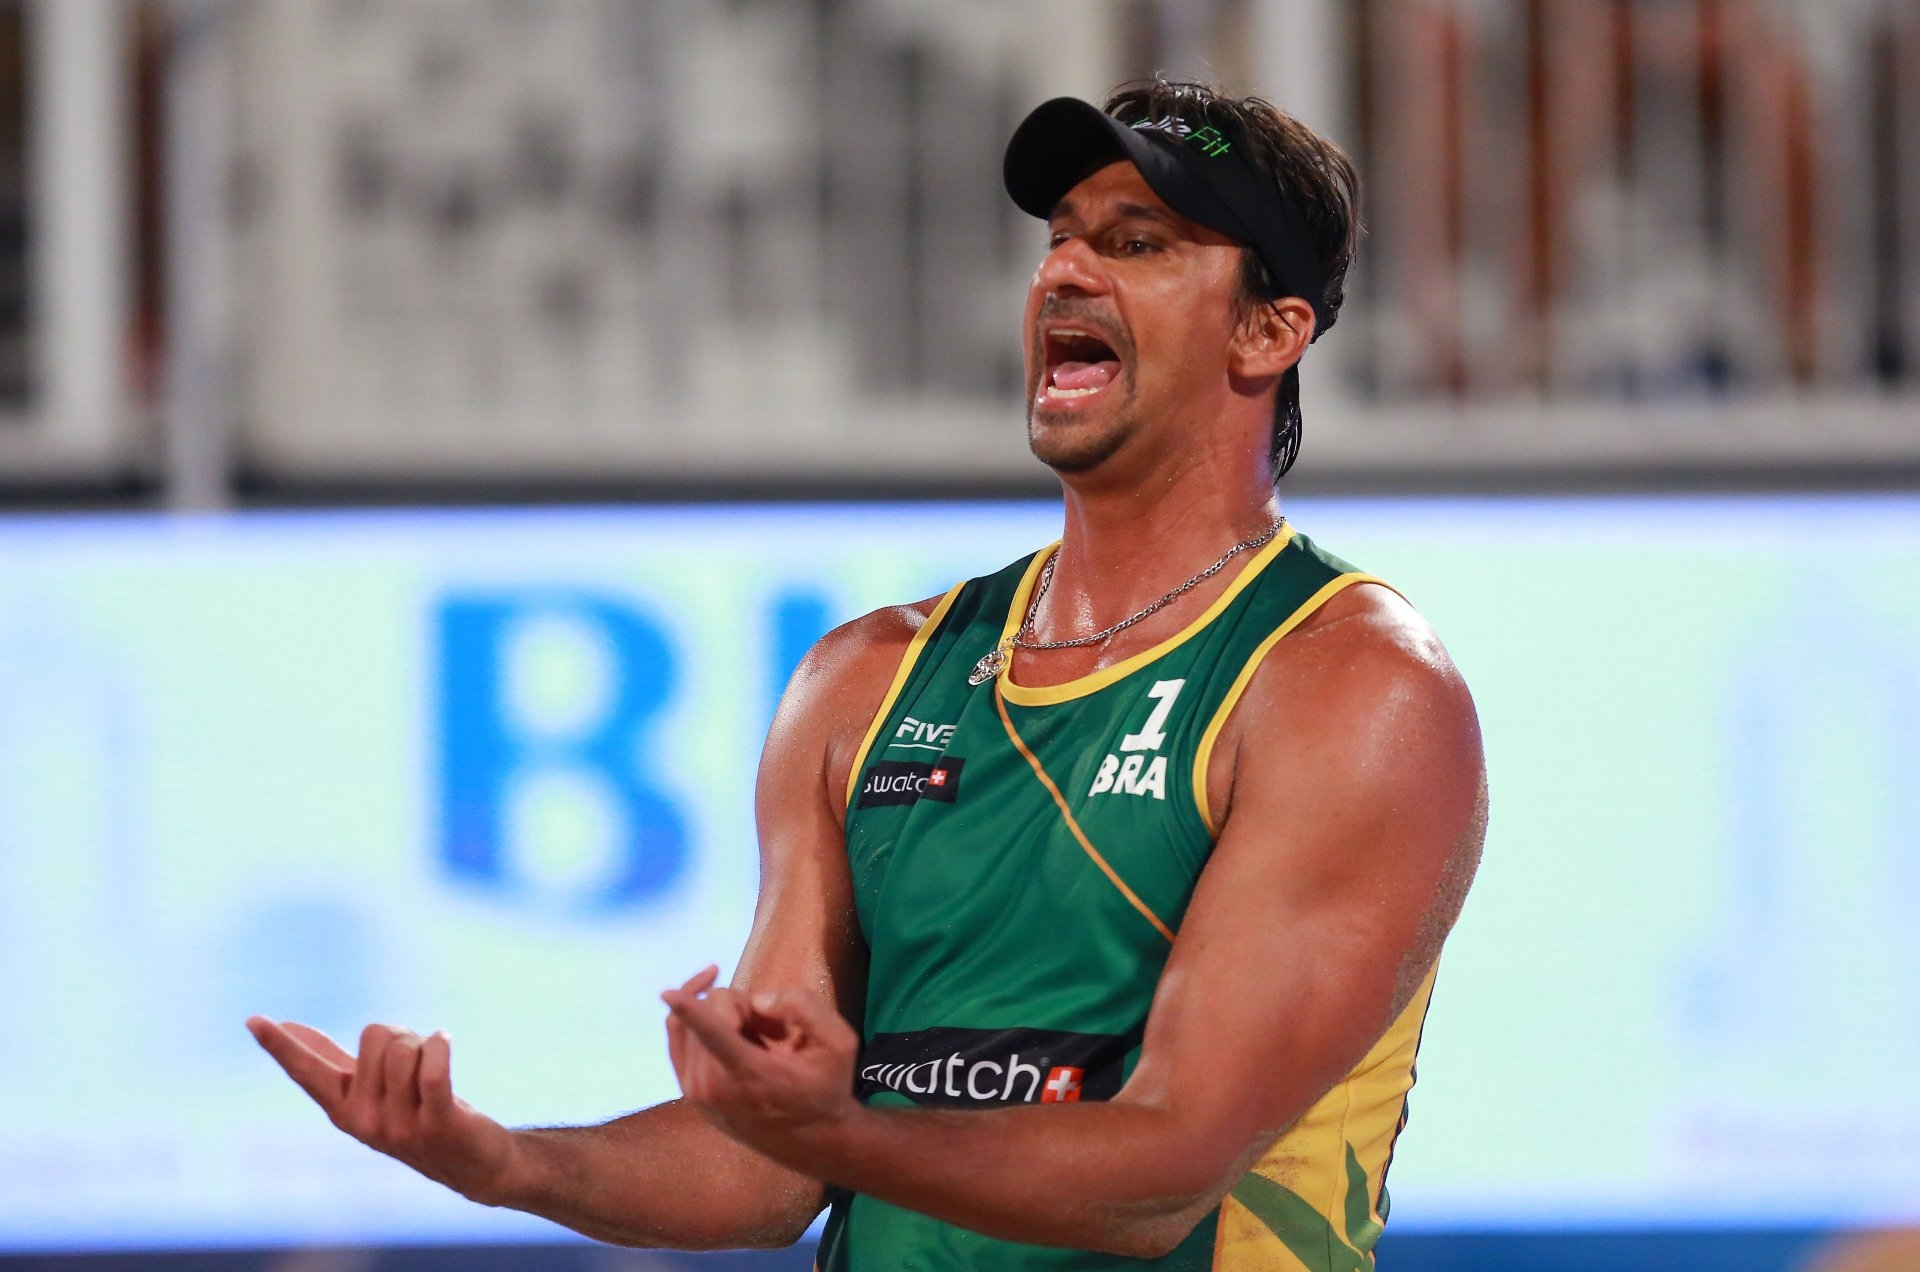 Ricardo in action during last year's Fort Lauderdale Major (Photocredit: FIVB)